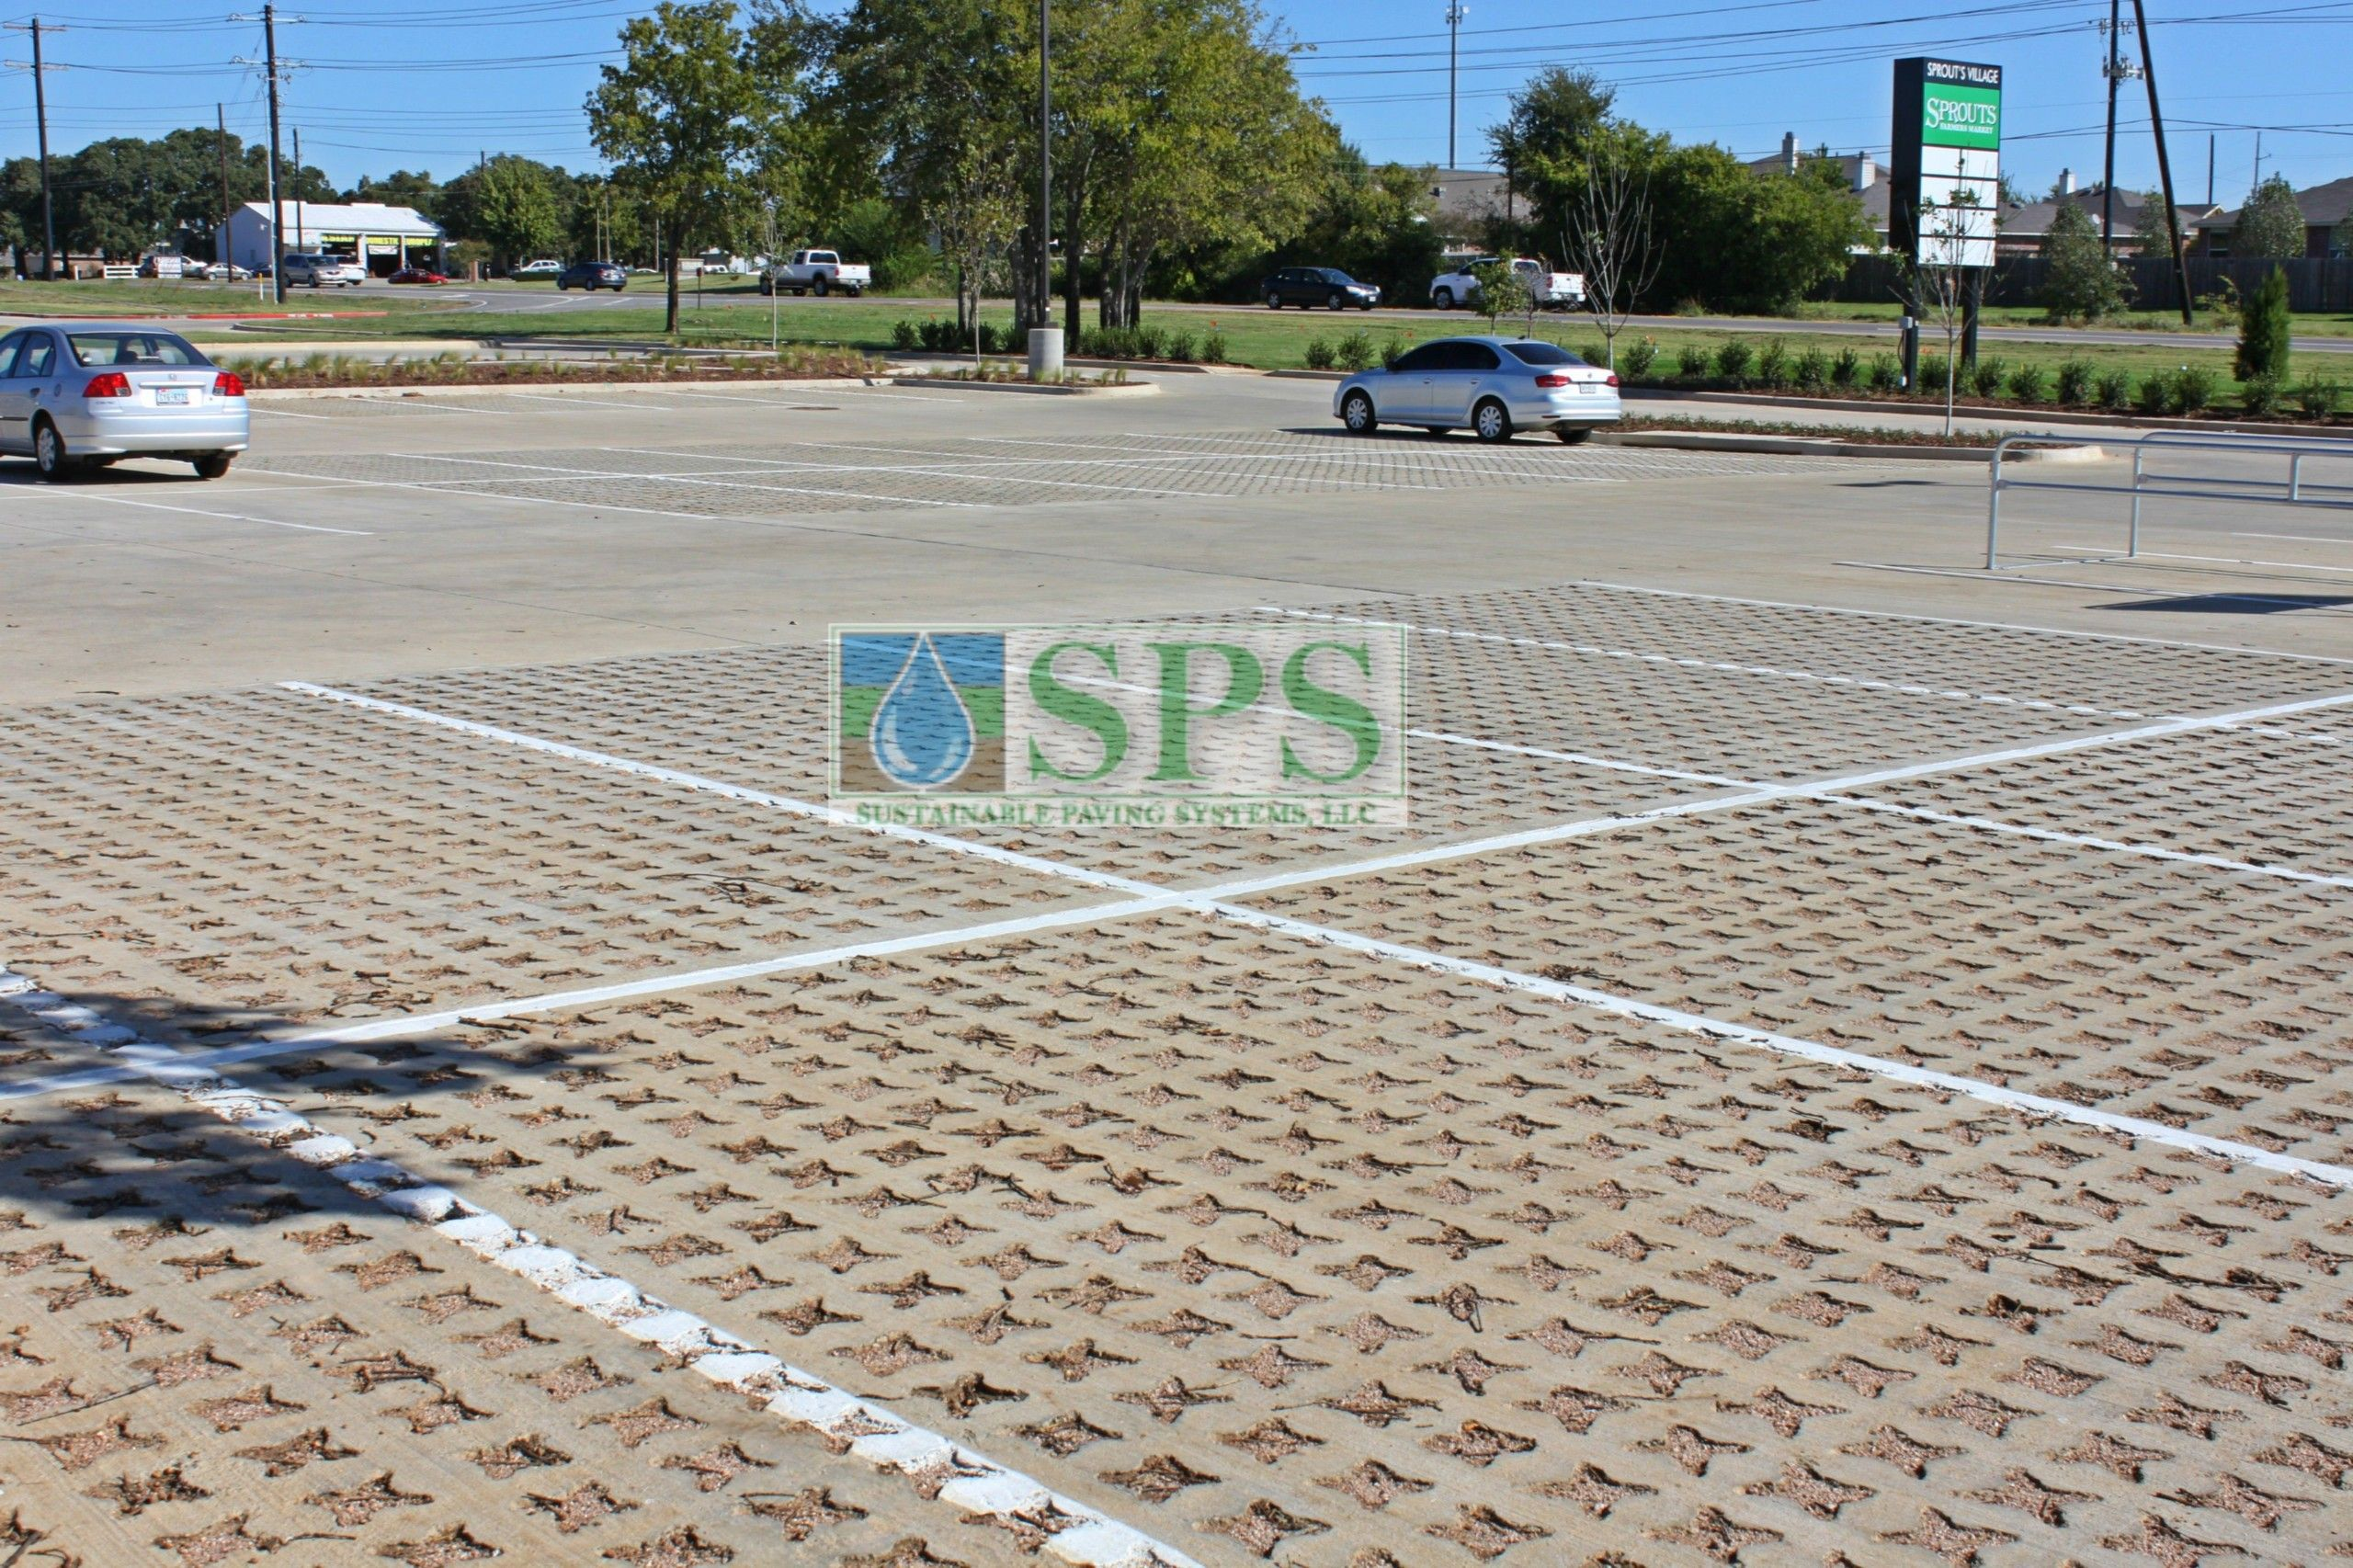 Parking lot view of Grasscrete Stone Filled System at Sprouts Farmers Market in Denton, TX, installed by Texas Bomanite.